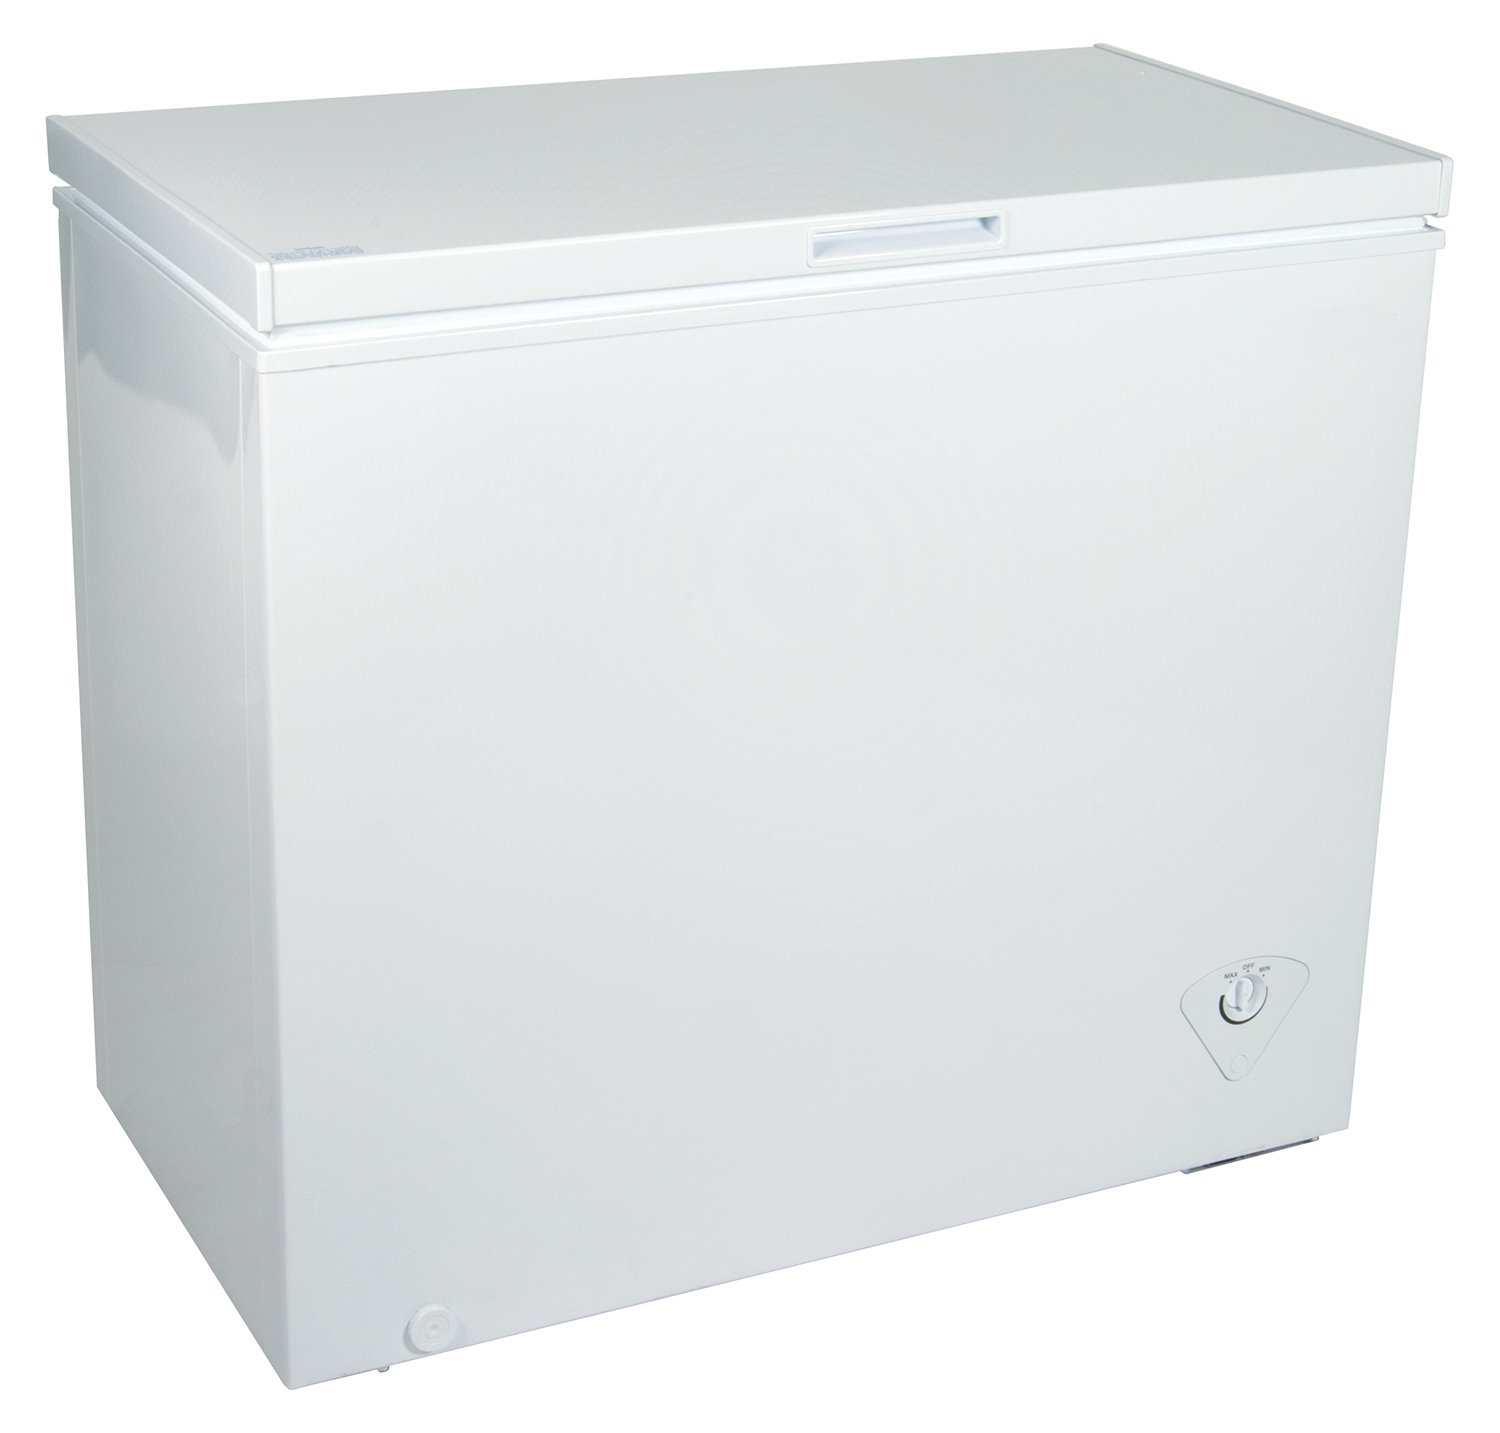 Koolatron KTCF195 7.0 cu. ft. Chest Freezer, White Koolatron (Kitchen)